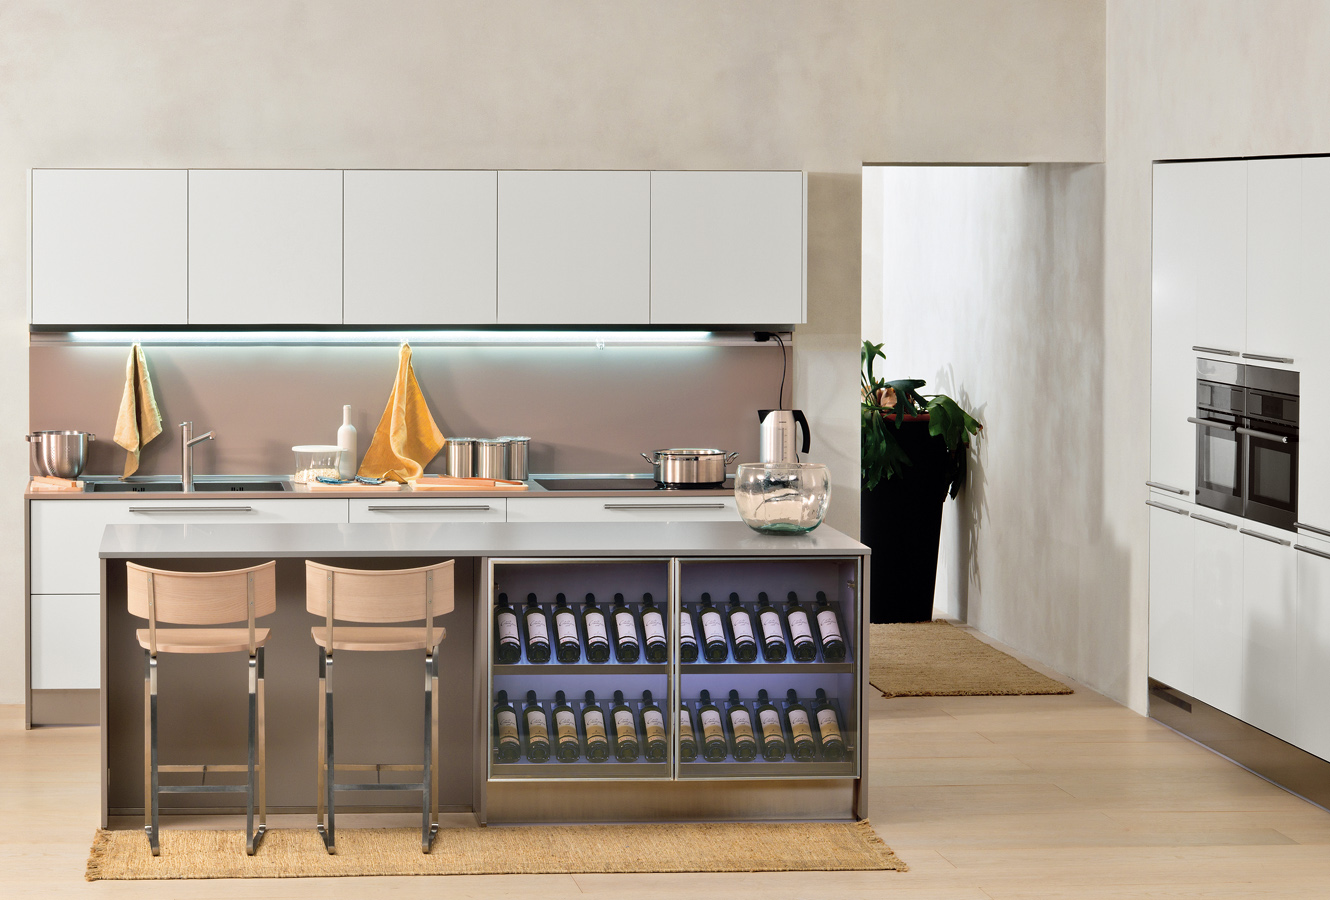 This Classy Kitchen Space Has A Full Wine Rack Built Into The Island It Adds